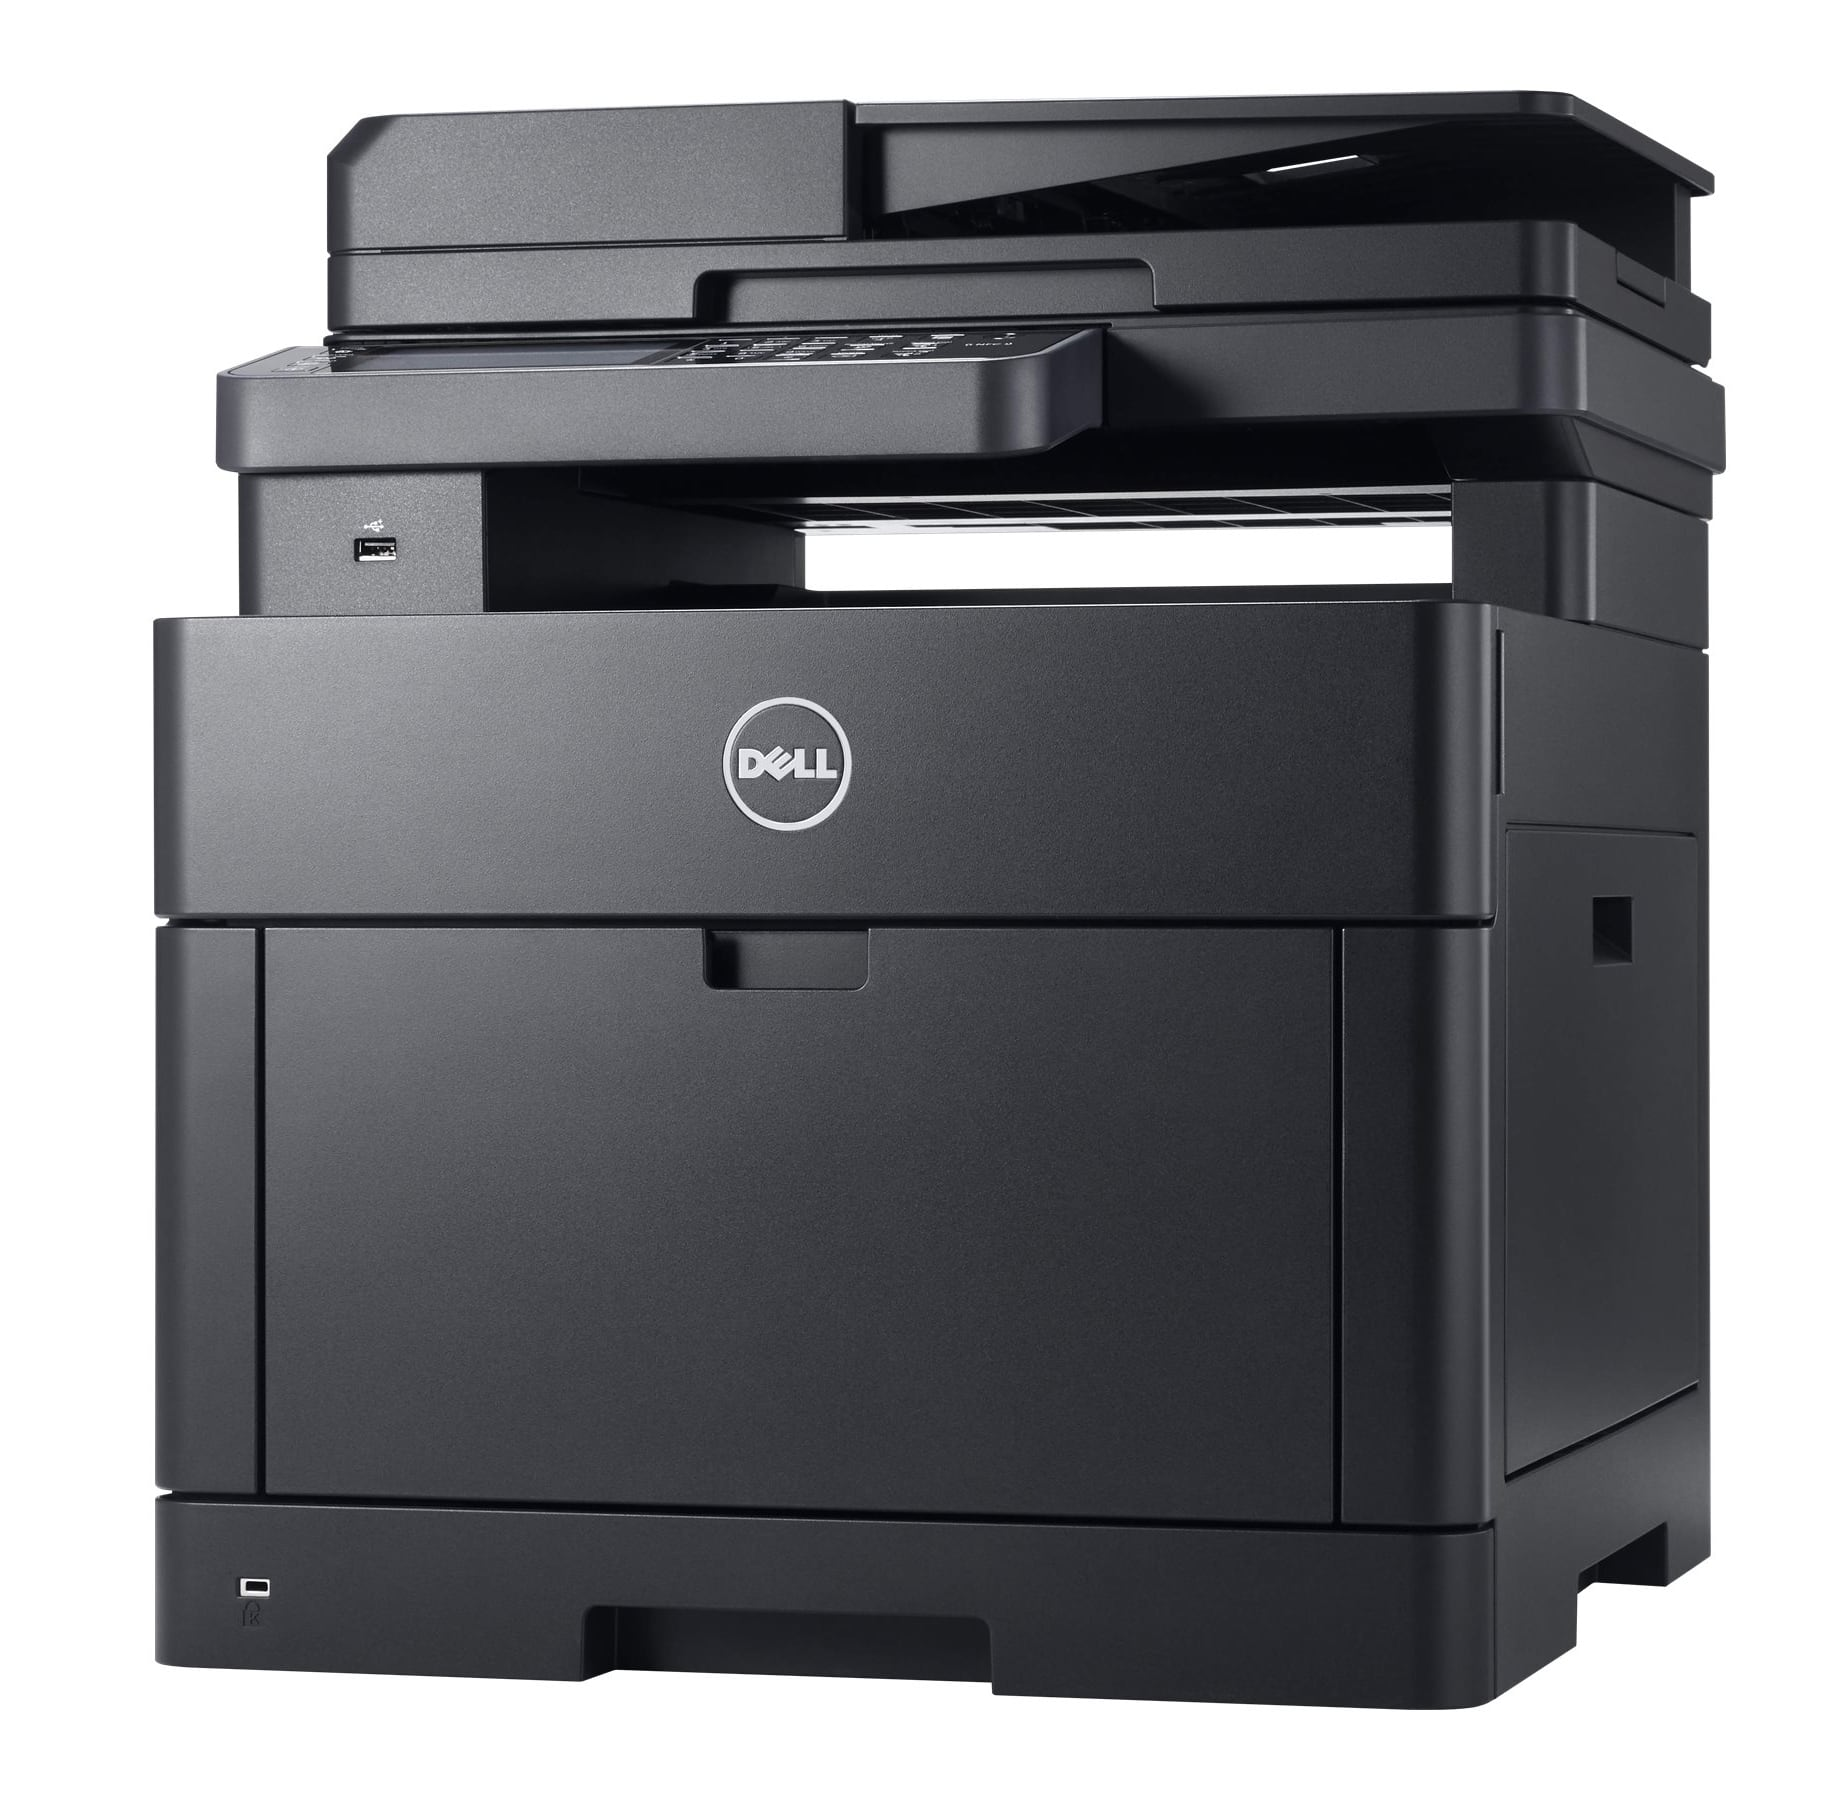 Dell H625CDW $149.99 FS at Quill